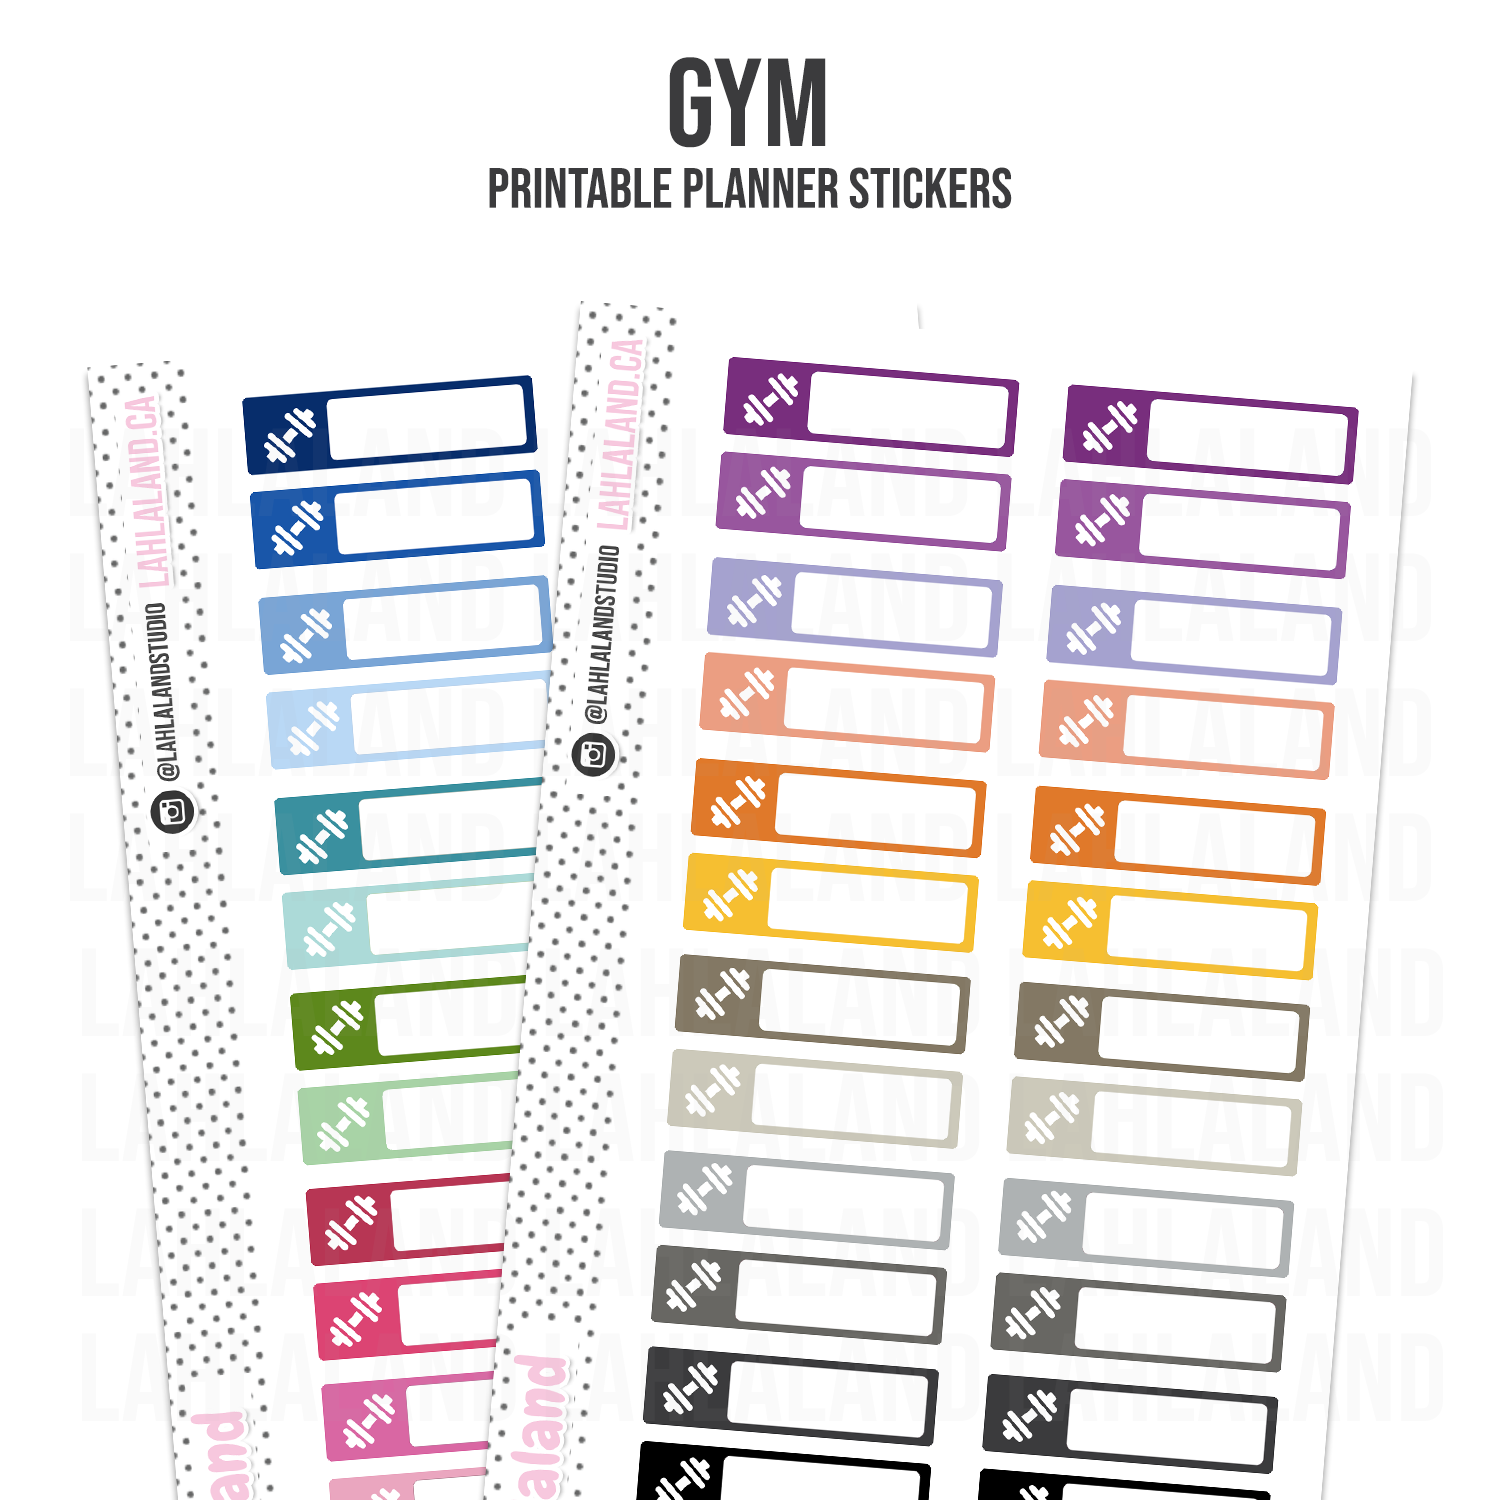 Gym - Functional Stickers